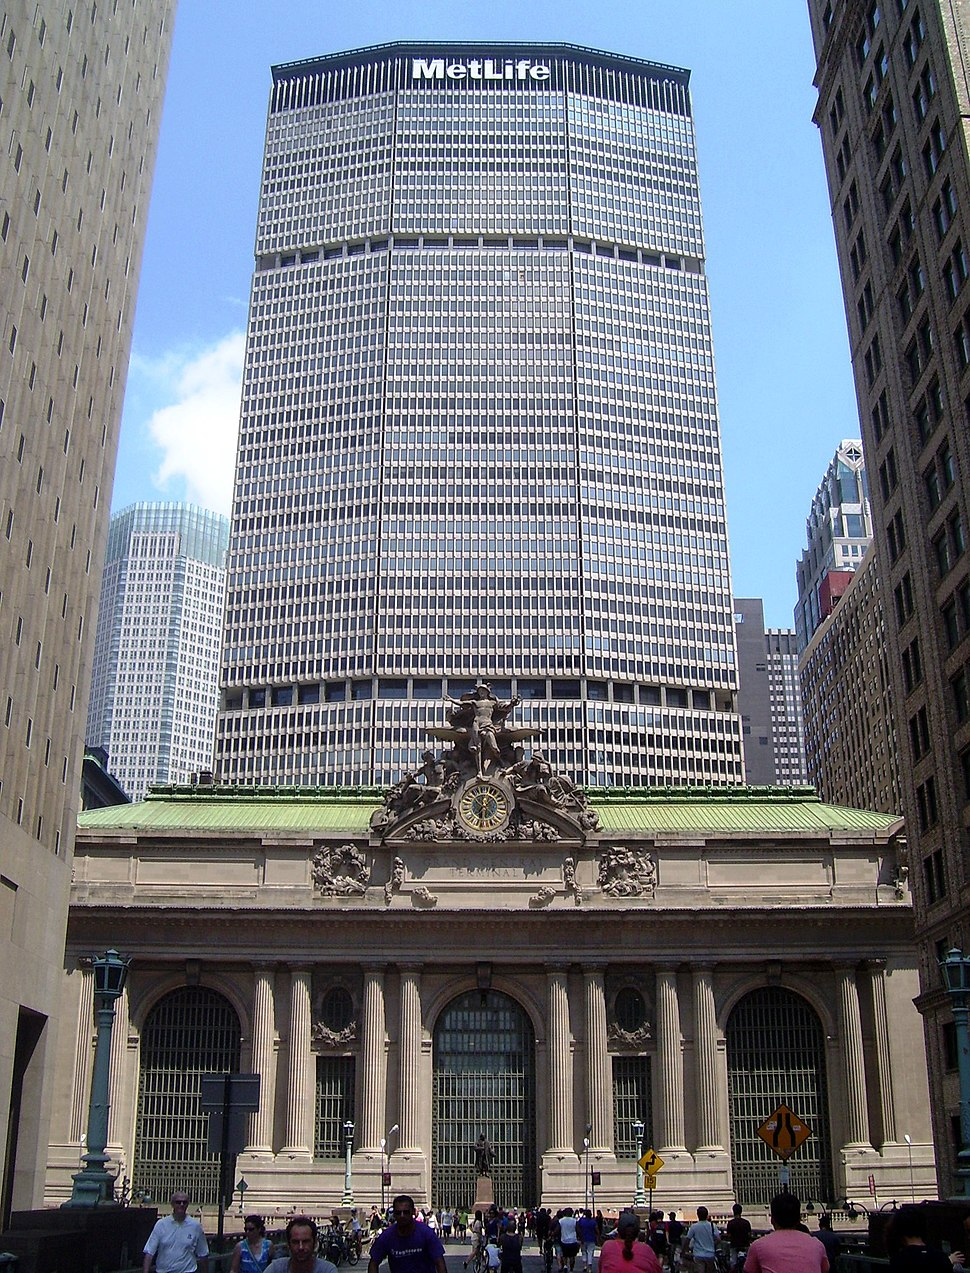 Grand Central Terminal MetLife Building Park Ave viaduct Summer Streets